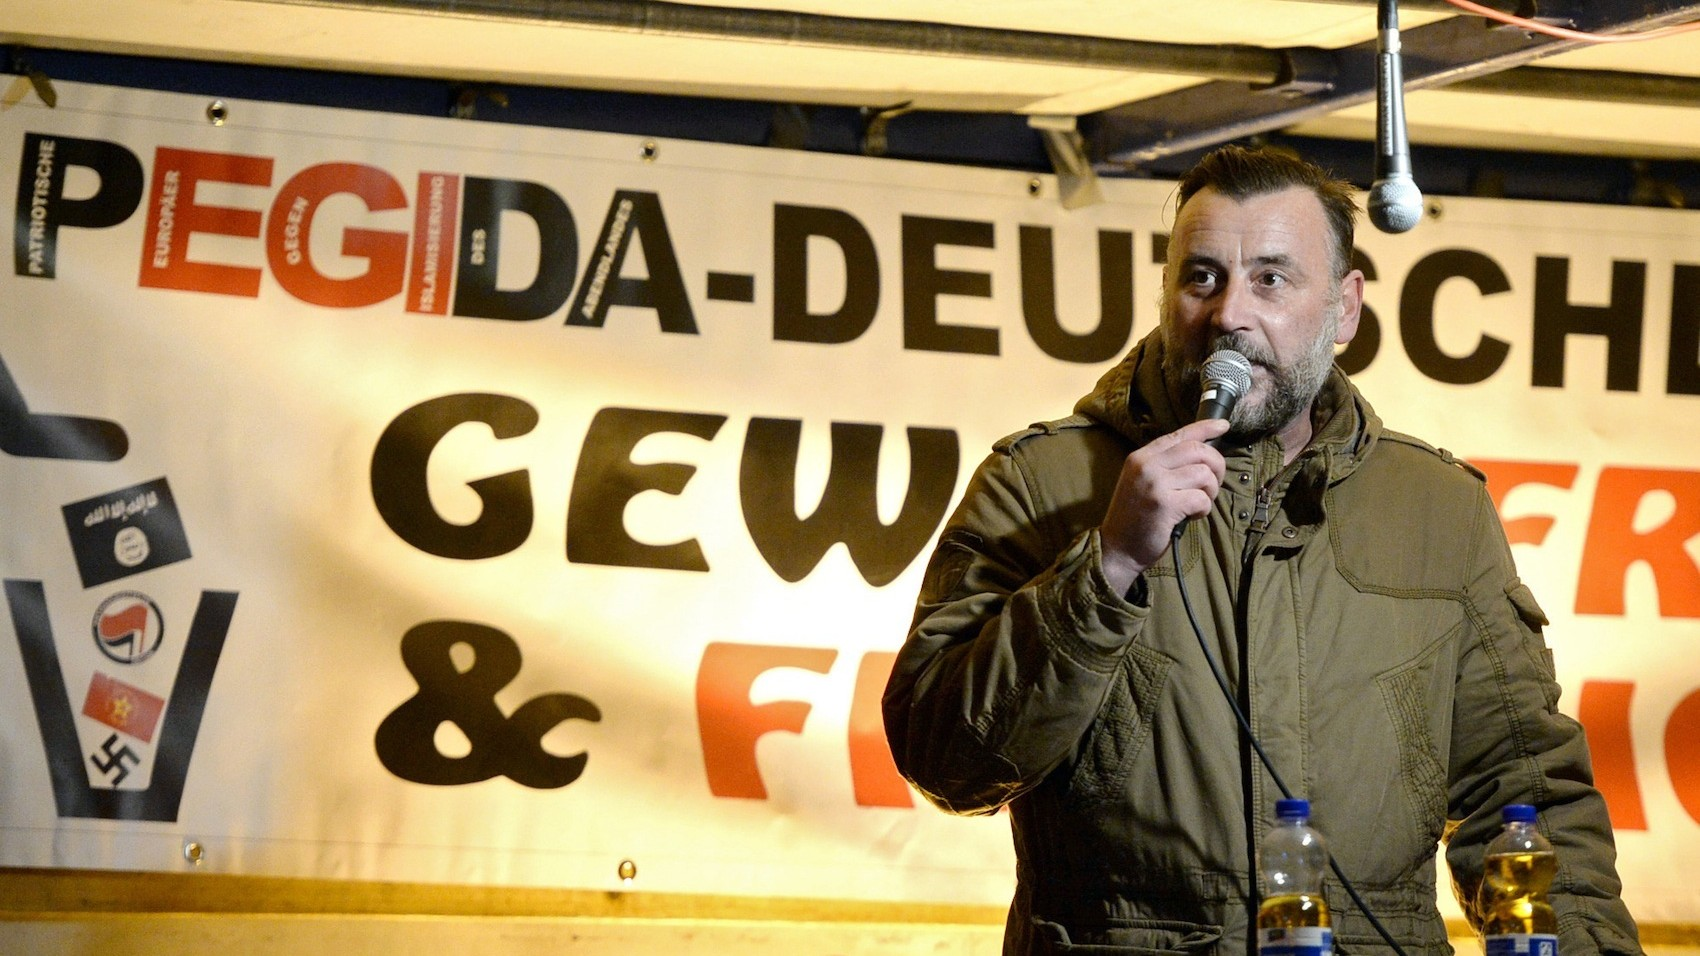 Founder of German Islamophobic Group Pegida to Stand Trial for Hate Speech